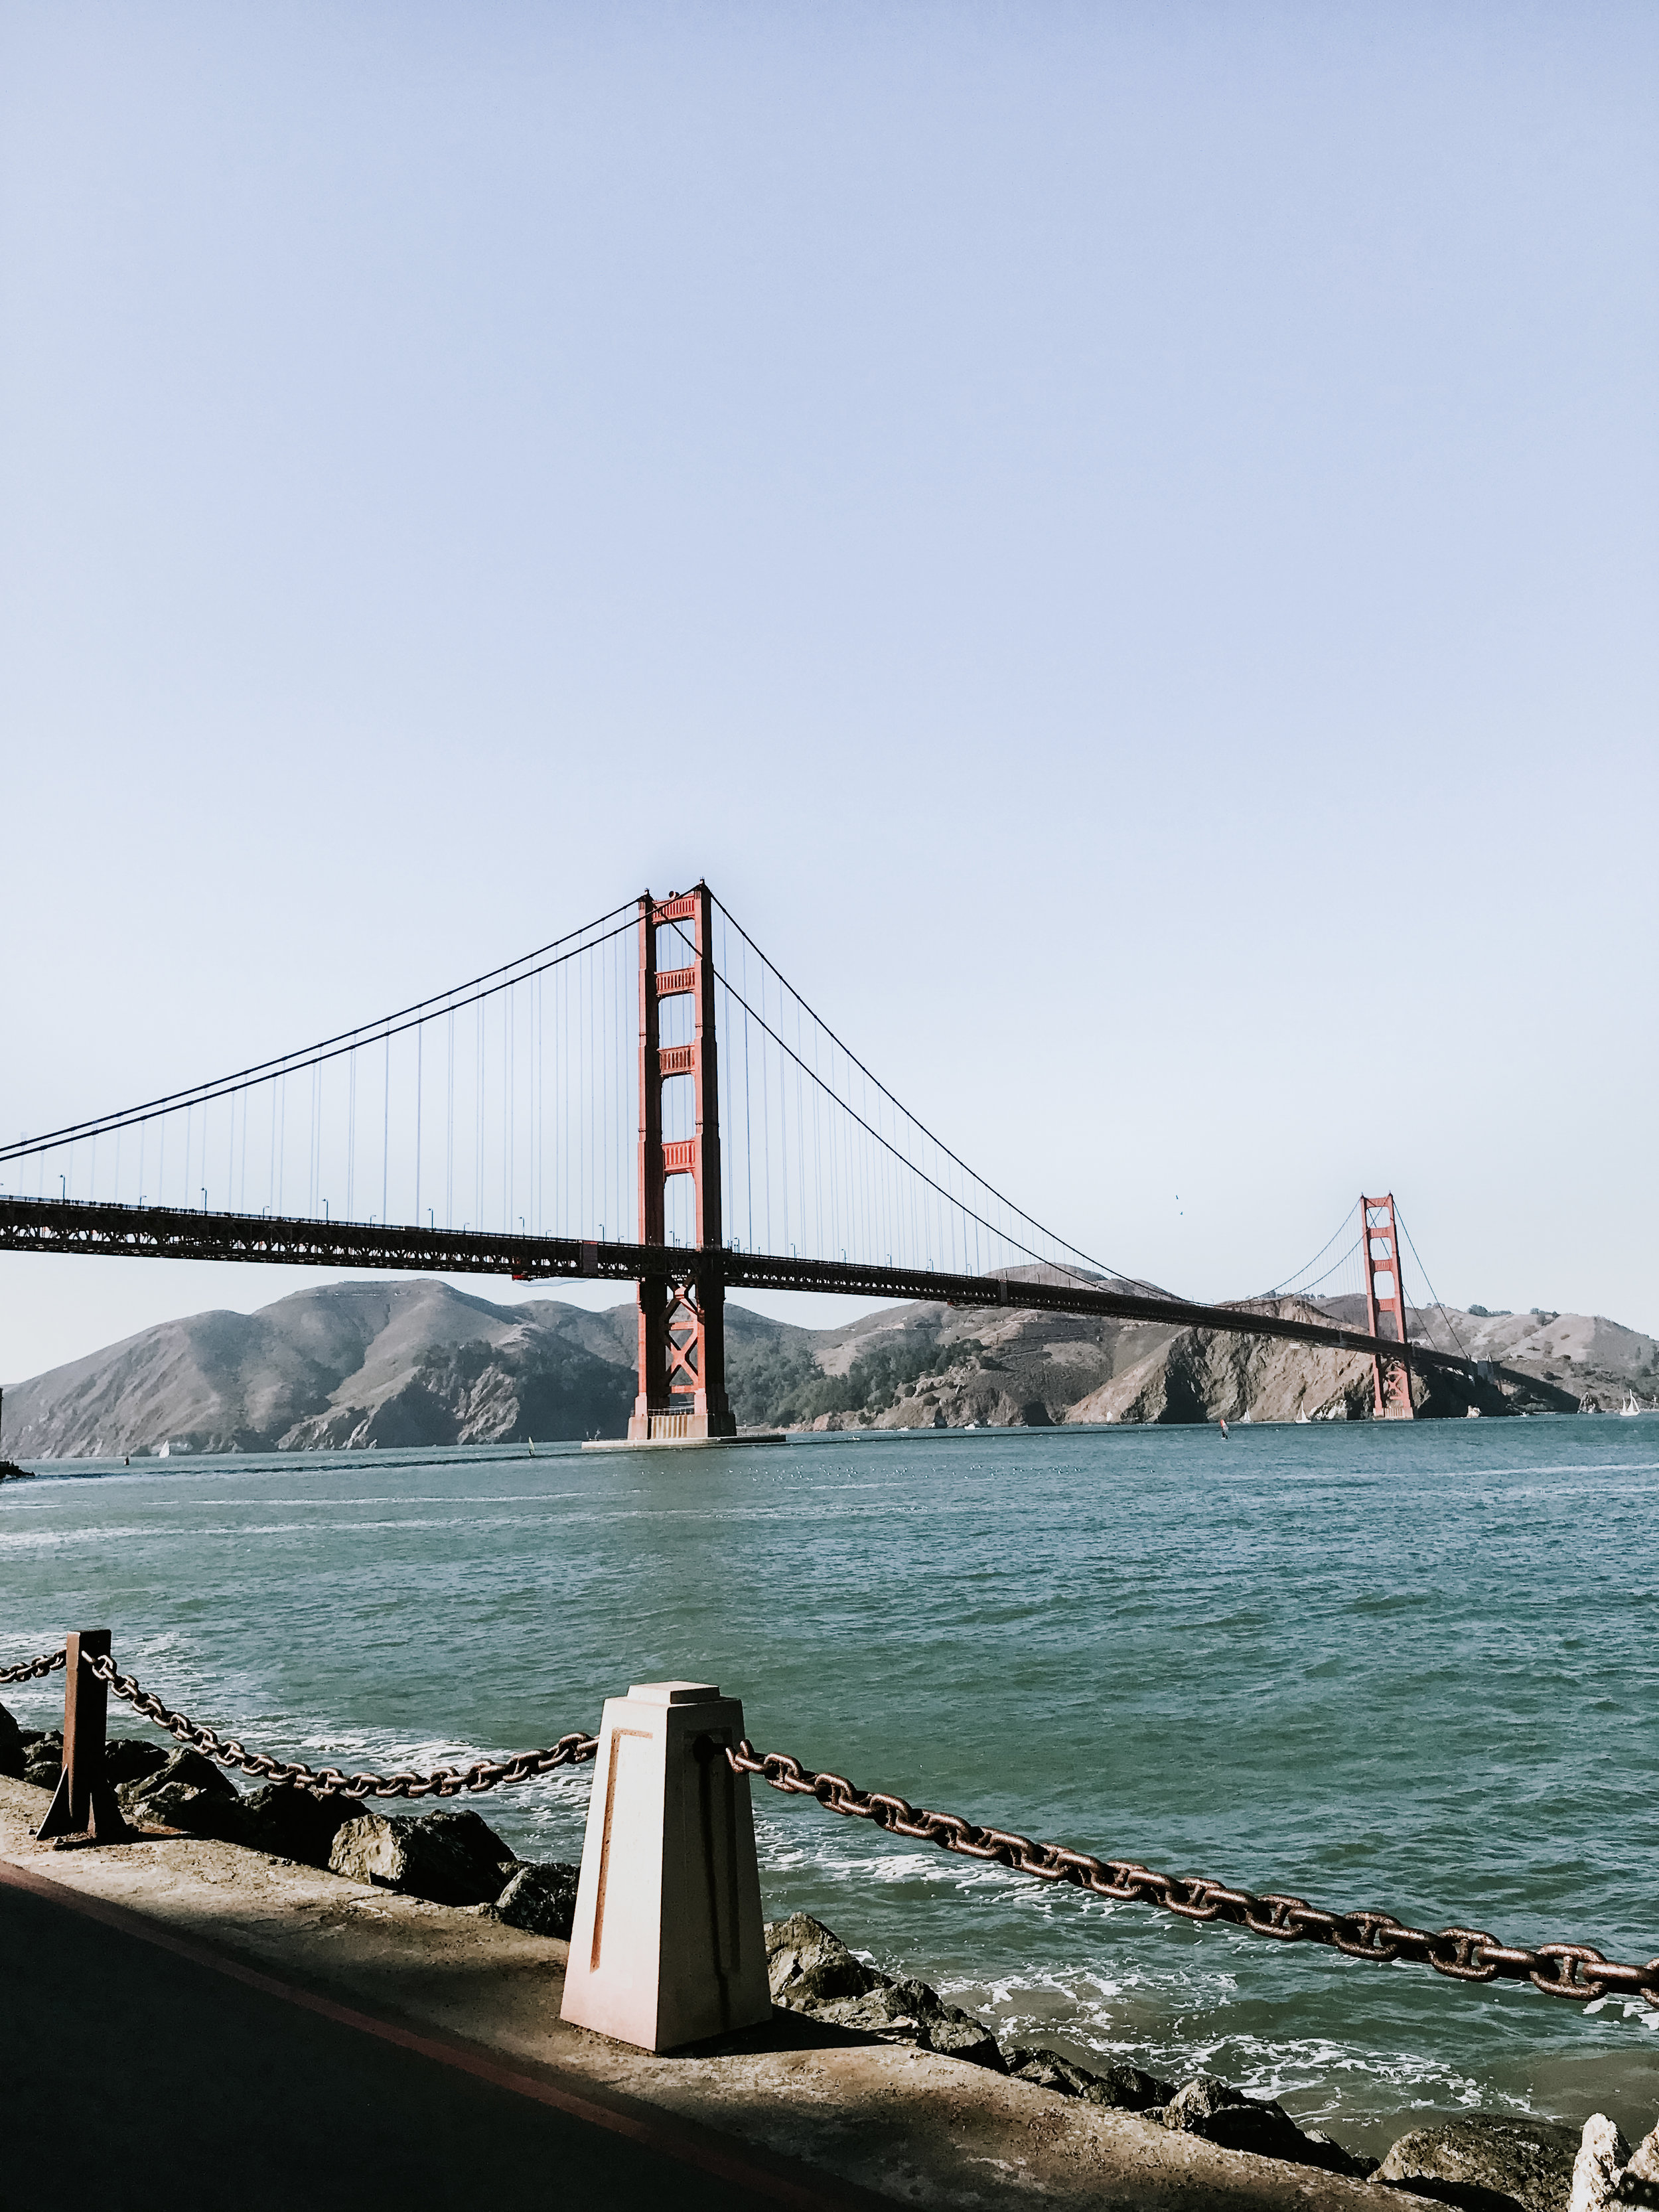 our trip to San Francisco - viewing the golden gate bridge